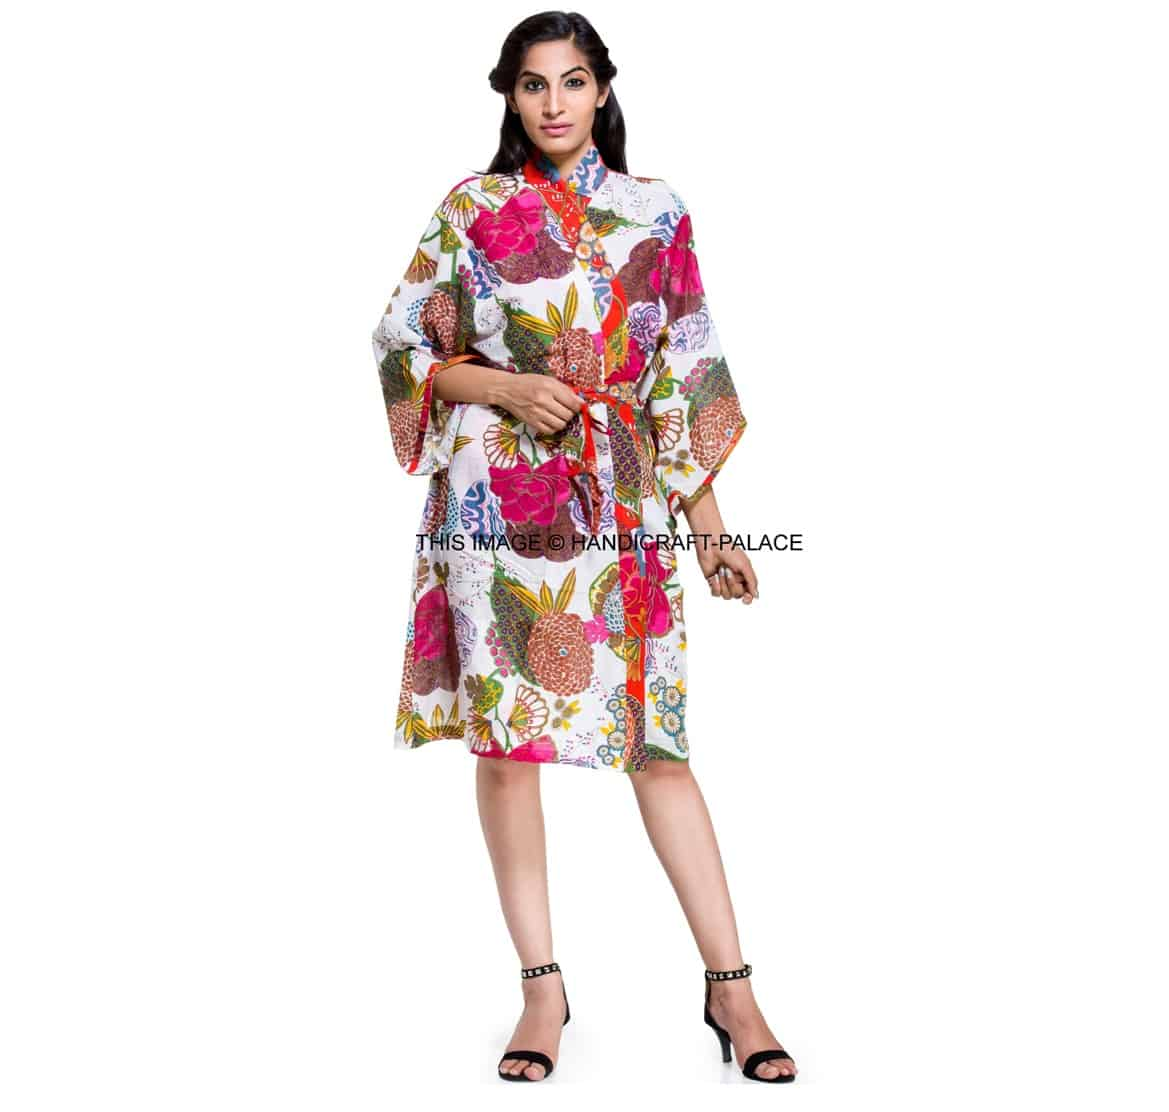 5d36c87a21 Indian Floral Ethnic Print Gown Cotton Kimono Robe Bath Robe Intimate  Nightwear  19.99. Next product · Women s new Caftan Beach Wear Kaftan   22.99. Click ...